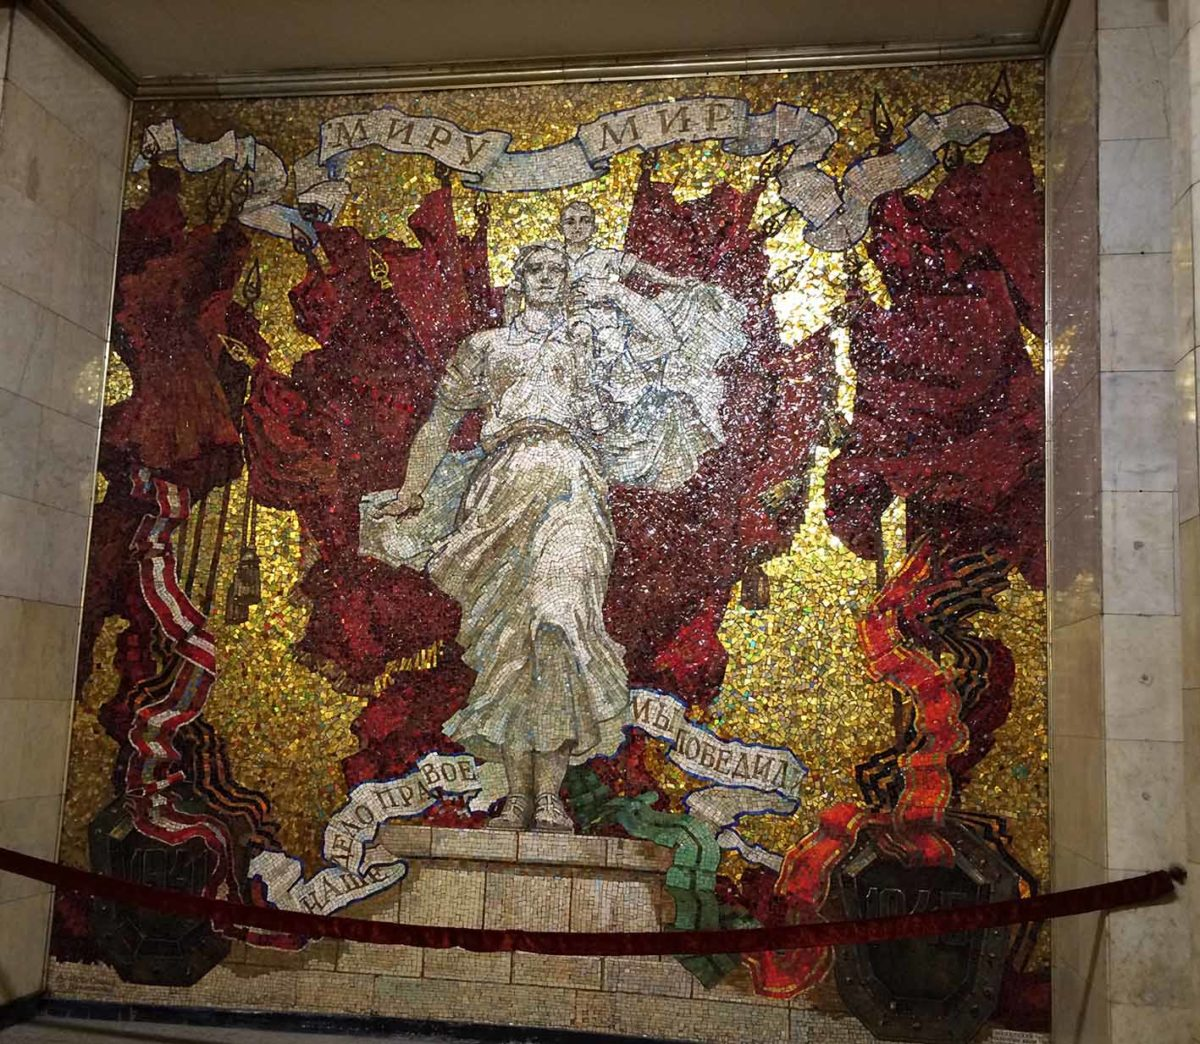 At the end of the platform in The Avtovo (А́втово ) station part of the Kirovsko-Vyborgskaya Line is a magnificent mosaic representing the Leningrad Blockade during World War 2